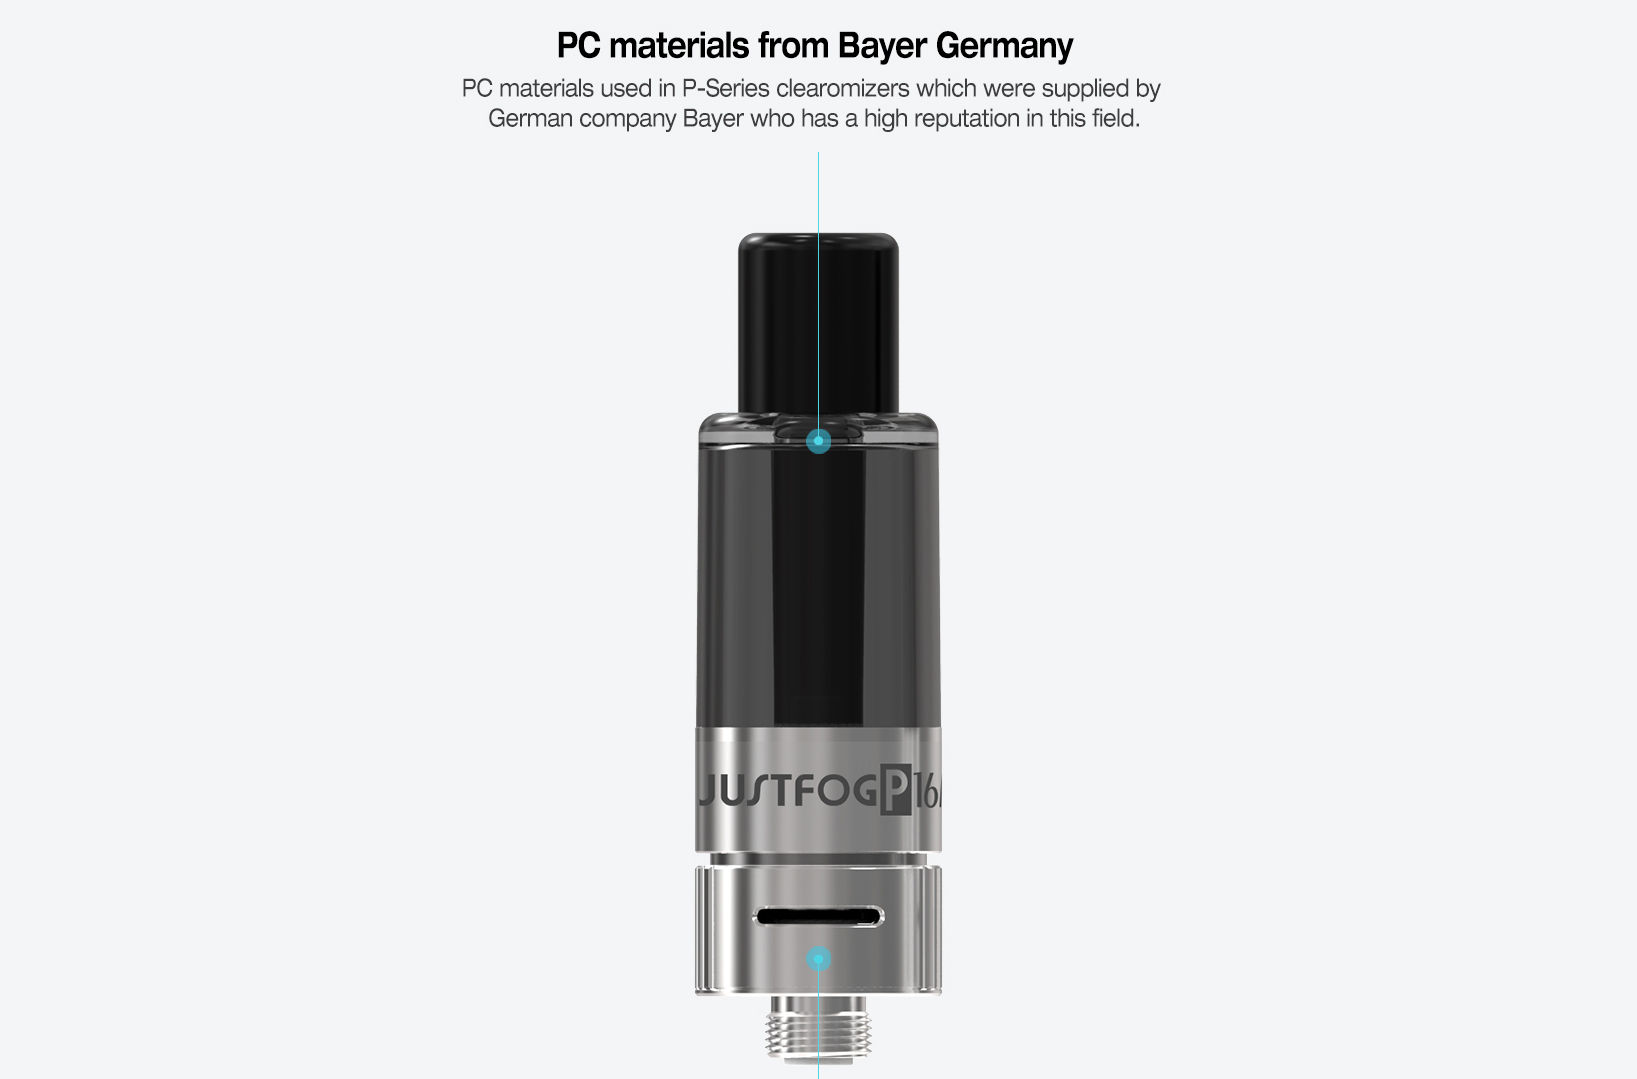 Justfog P16A Clearomizer Features 06